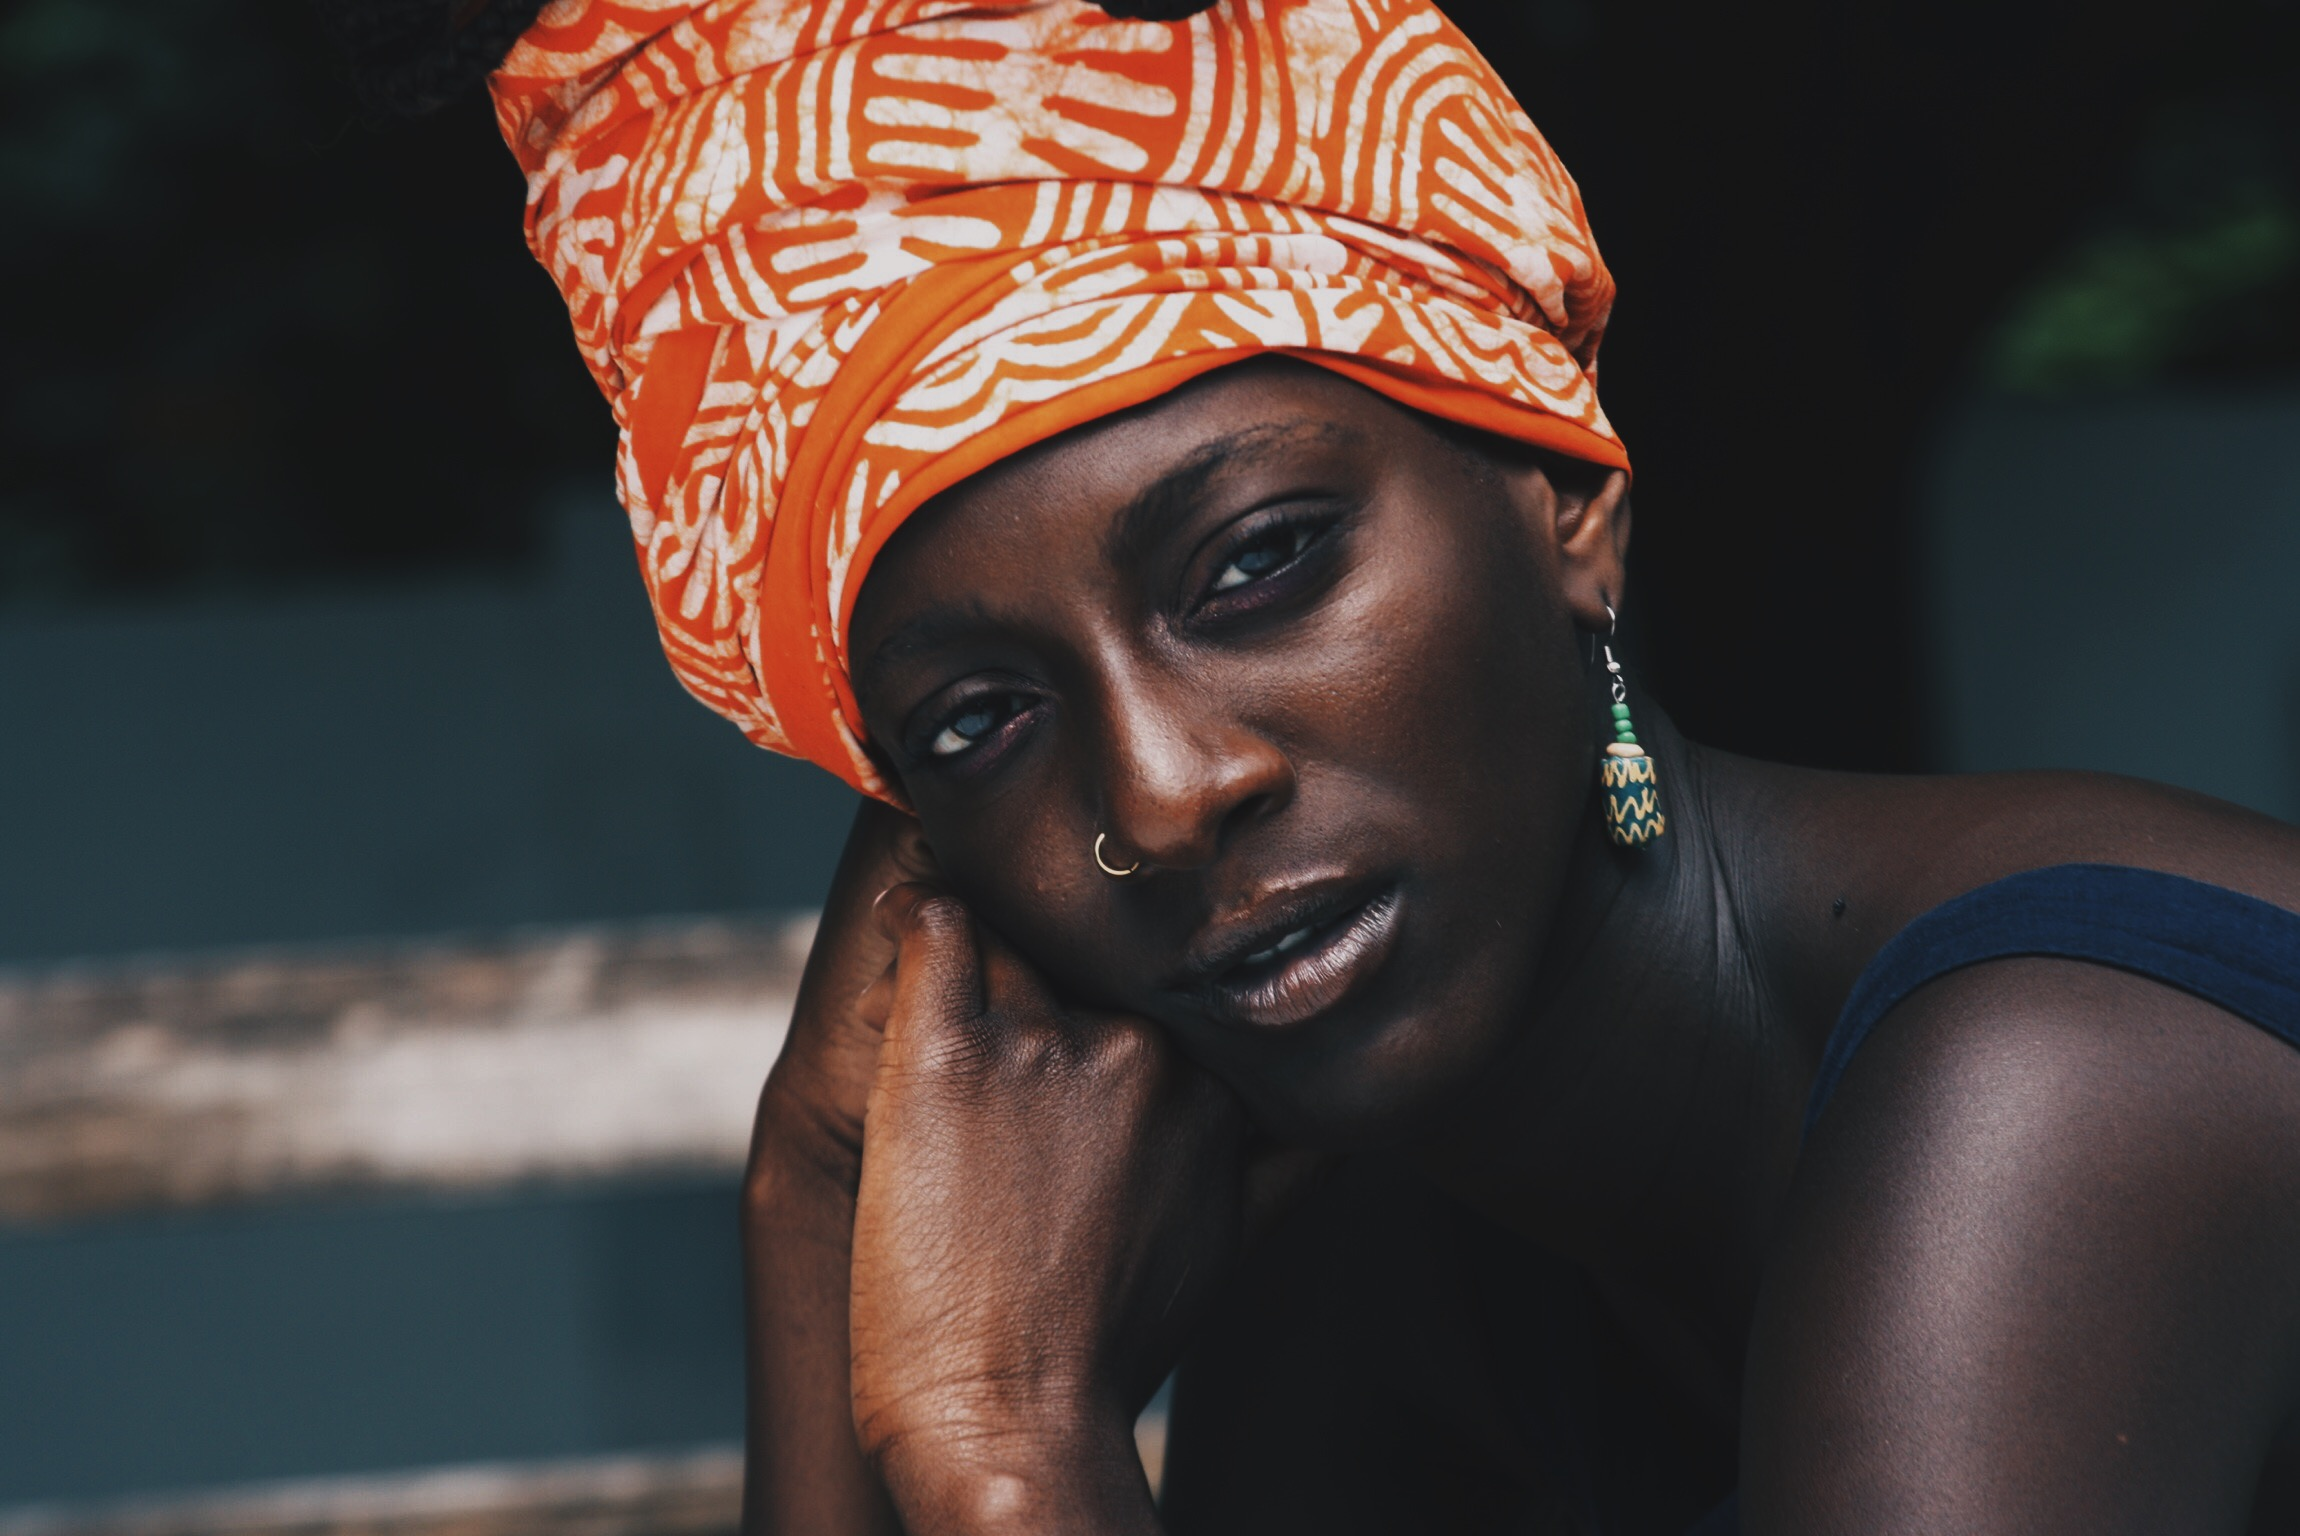 portrait photography inspiration for black people